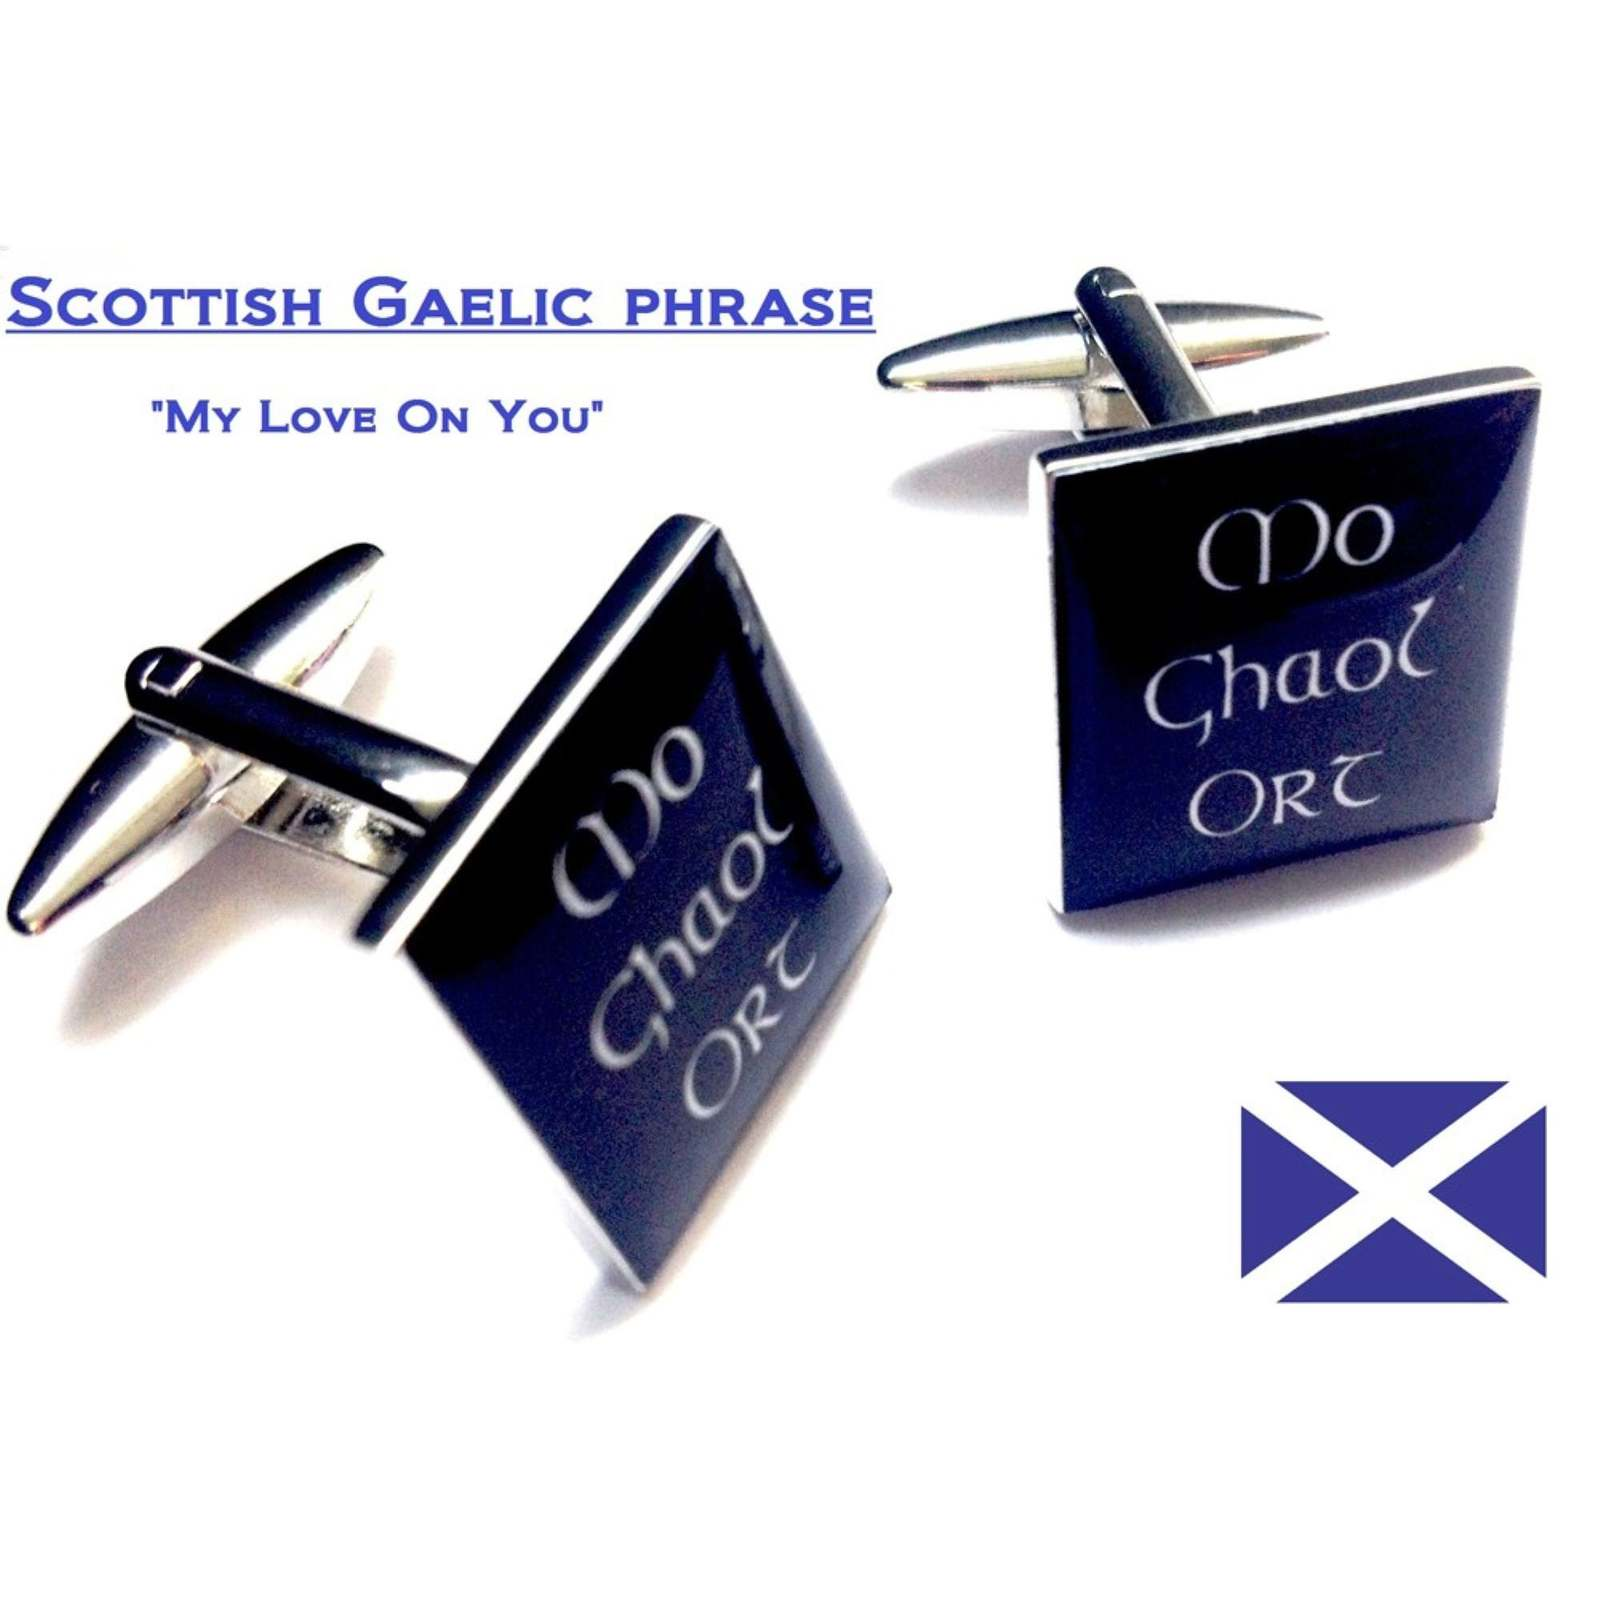 Scots Celtic Cufflinks  Gaelic phrase ,My Love On You,.  in gift box